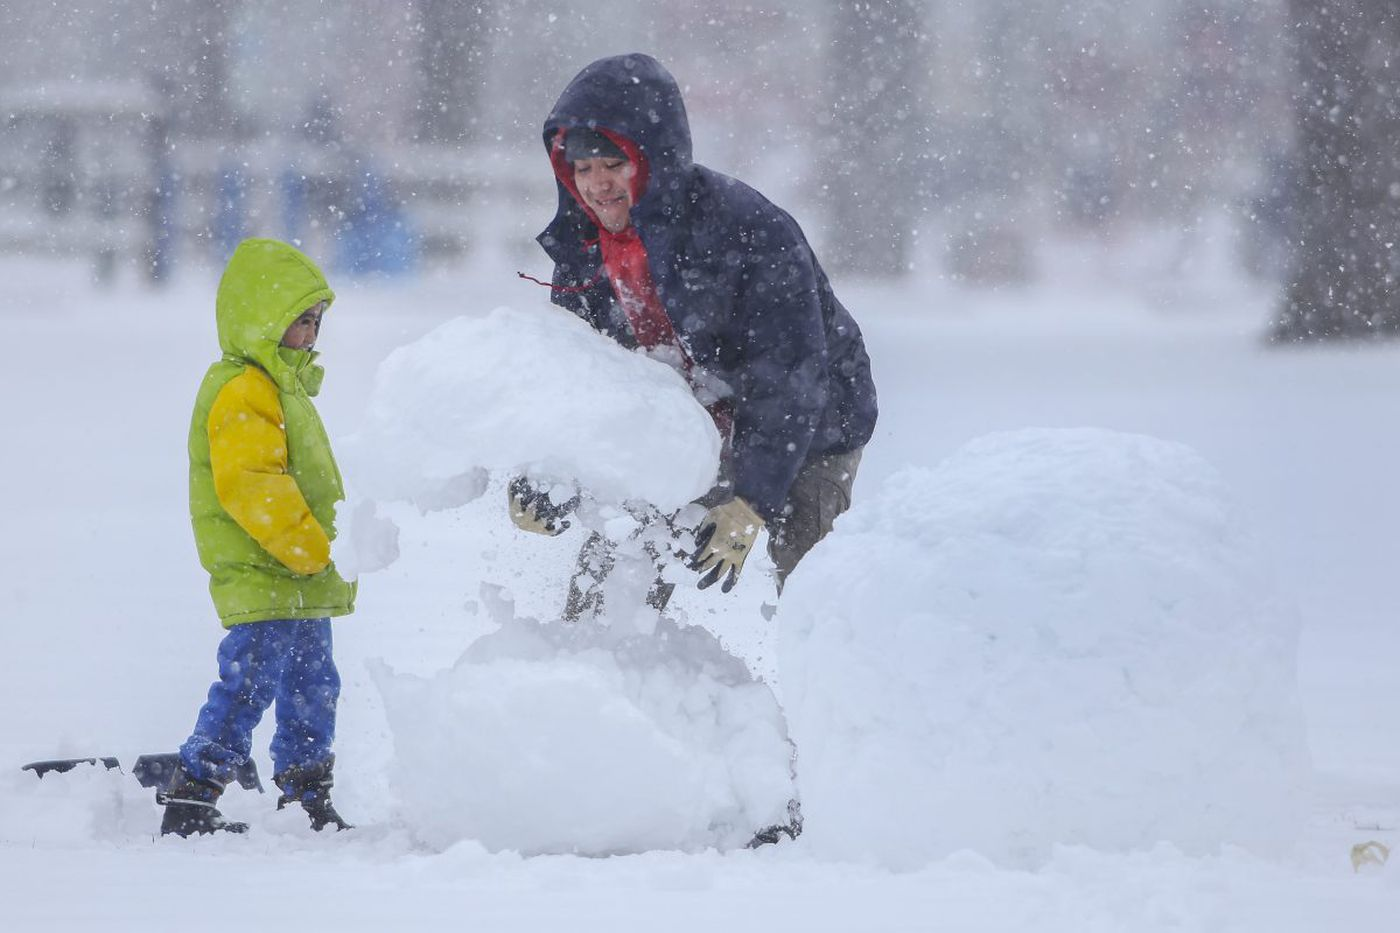 Biggest snow of the season … so why wasn't it more disruptive?